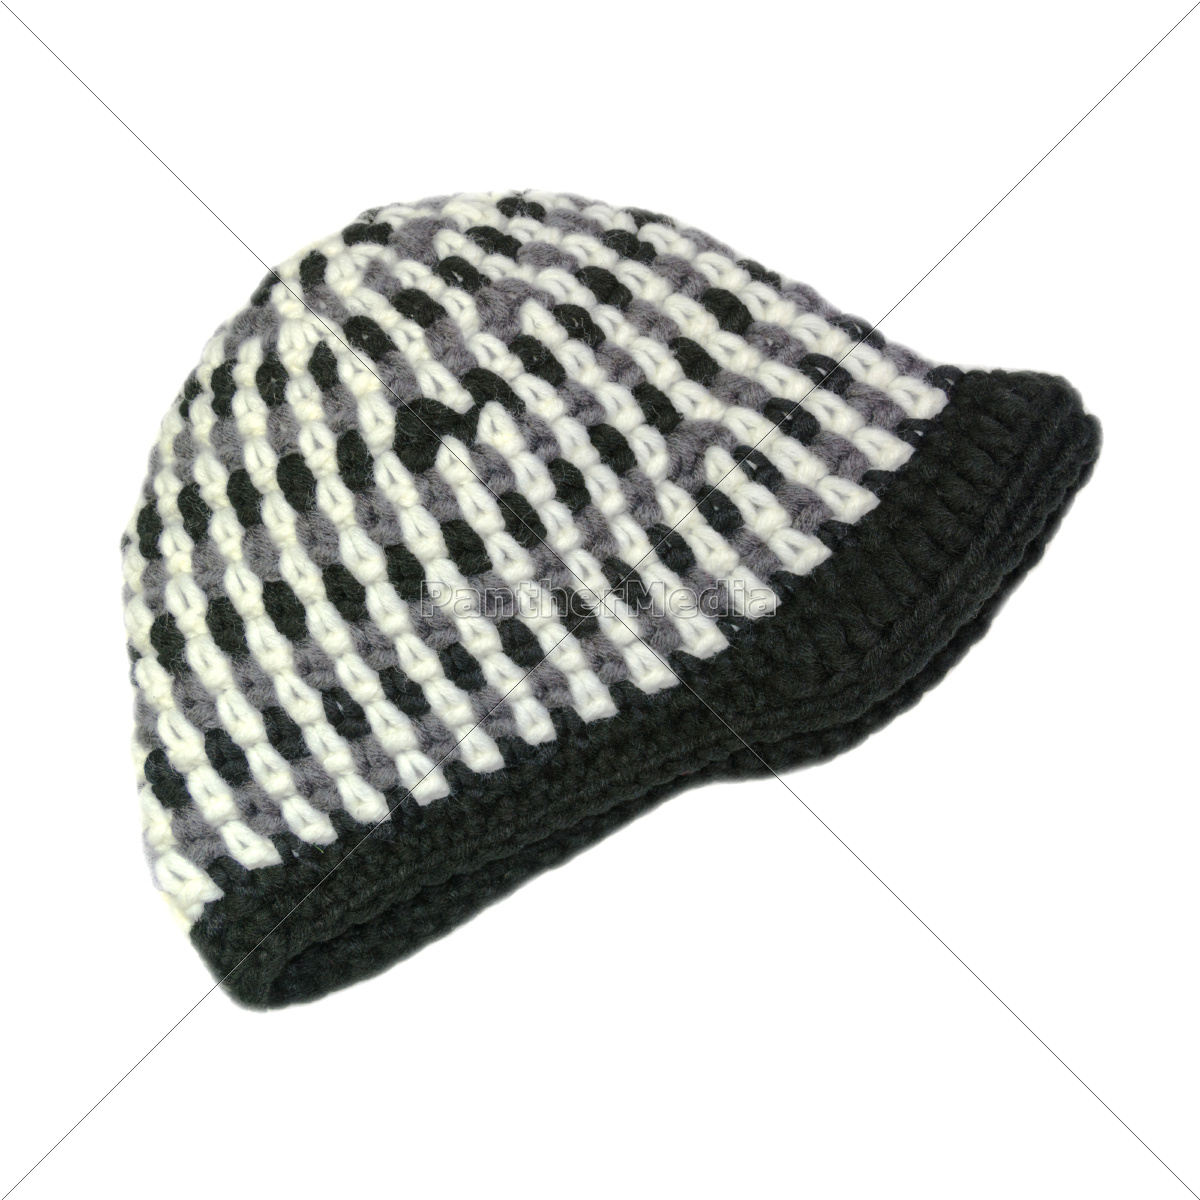 crocheted, cap, in, black, and, white - 10774817